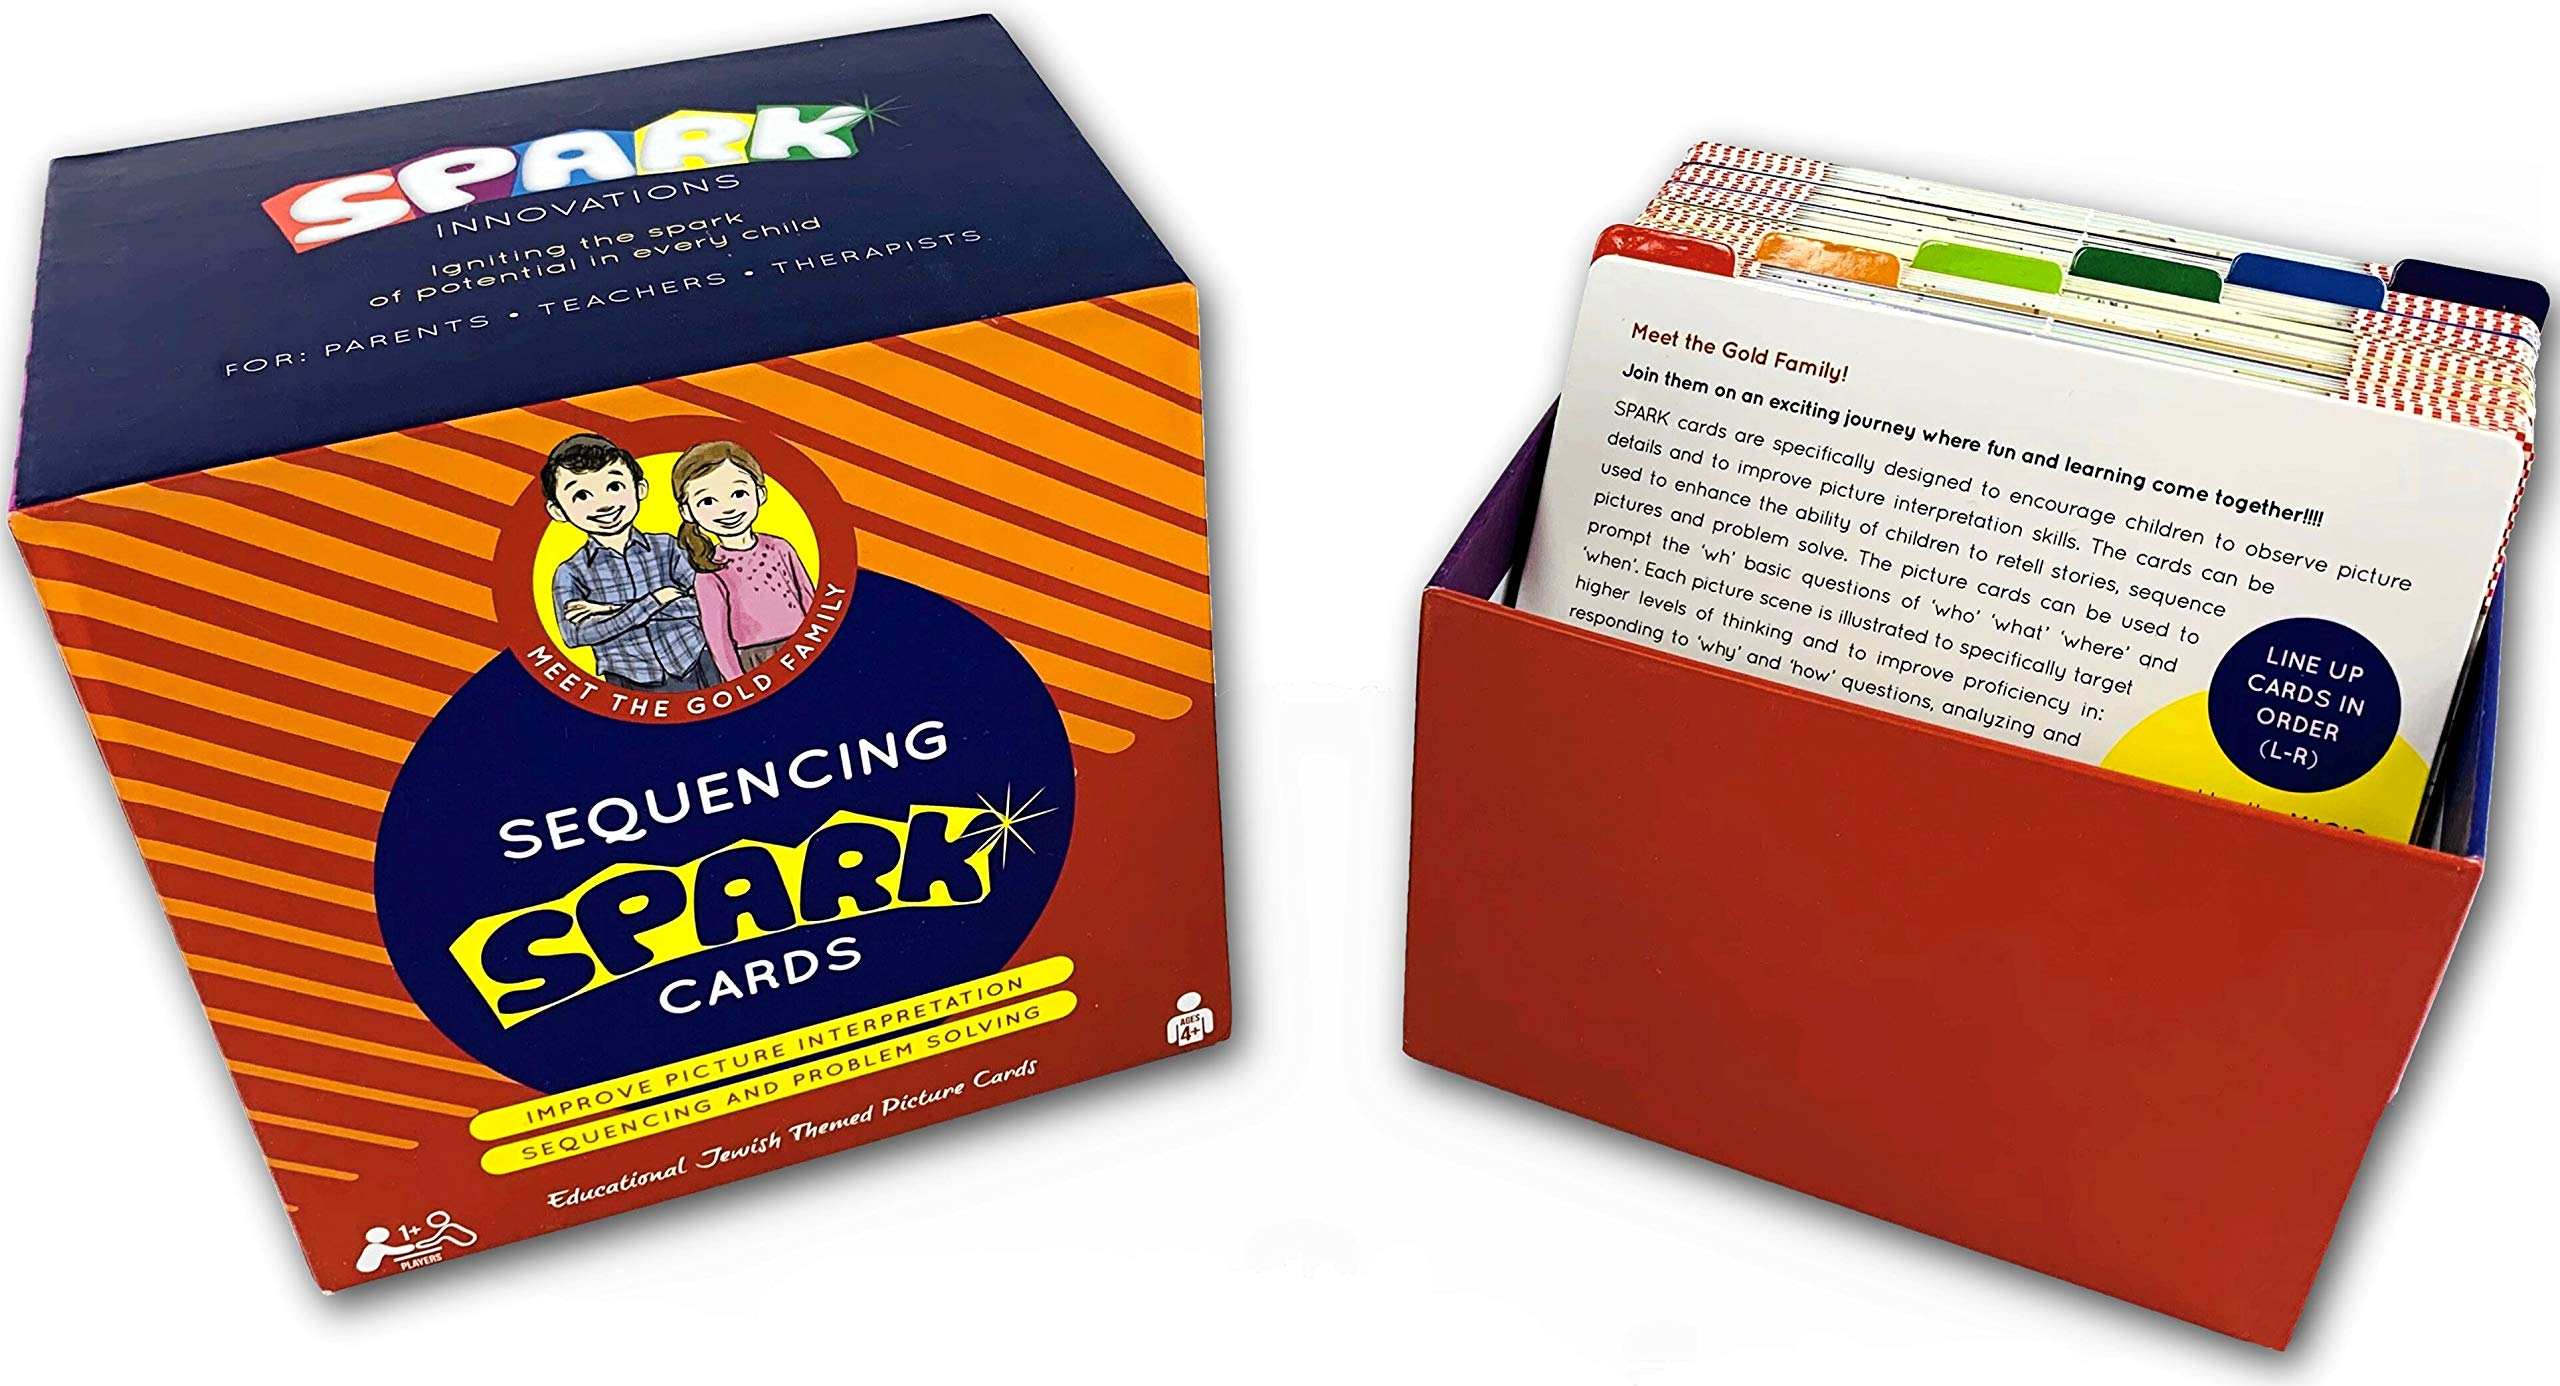 Sequencing Cards For Storytelling and Picture Interpretation - JEWISH THEMED Story Cards Speech Therapy Game, Problem Solving, Special Education, Includes Shabbos, Chanukah and Purim Stories by SPARK INNOVATIONS